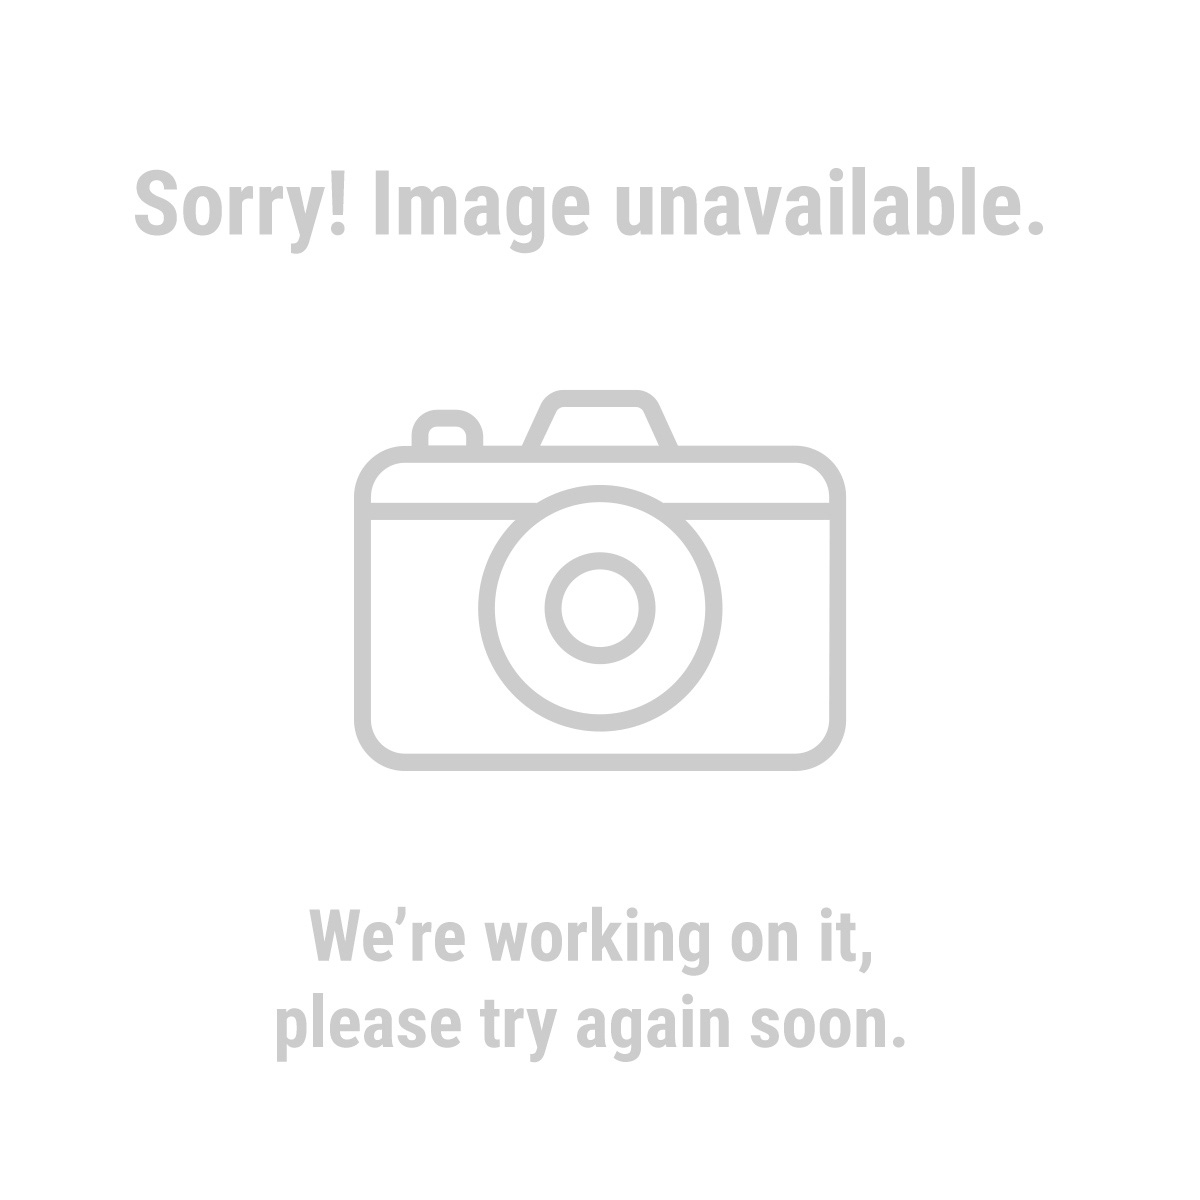 U.S. General 91883 4-Tier Shelf Rack